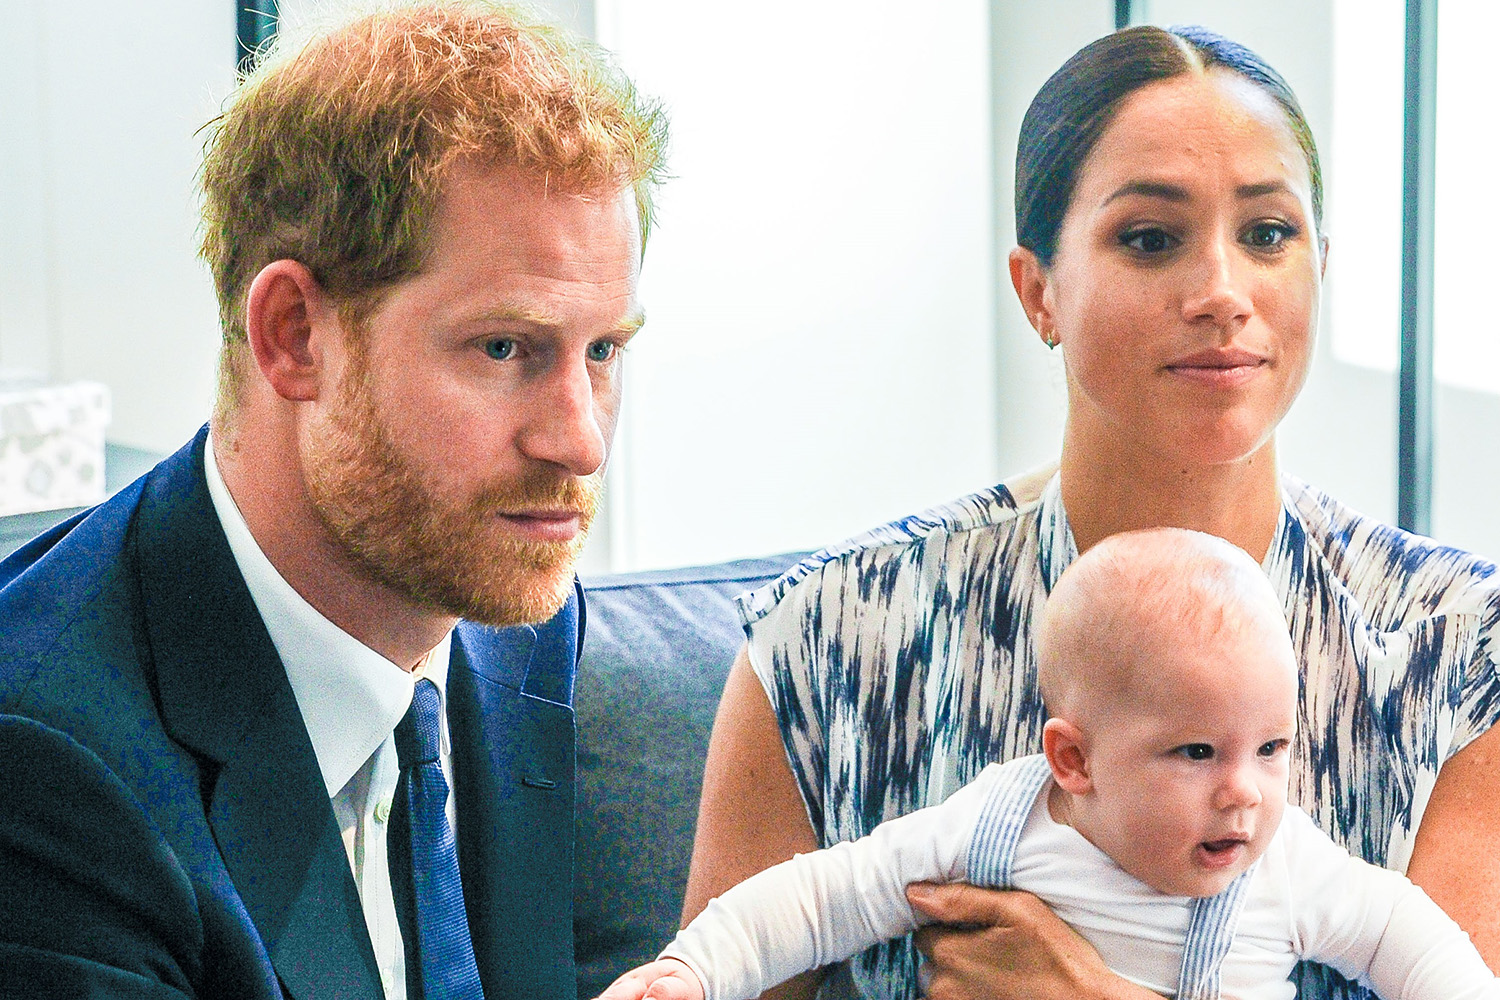 Prince Harry is spitting image of Archie in childhood photos